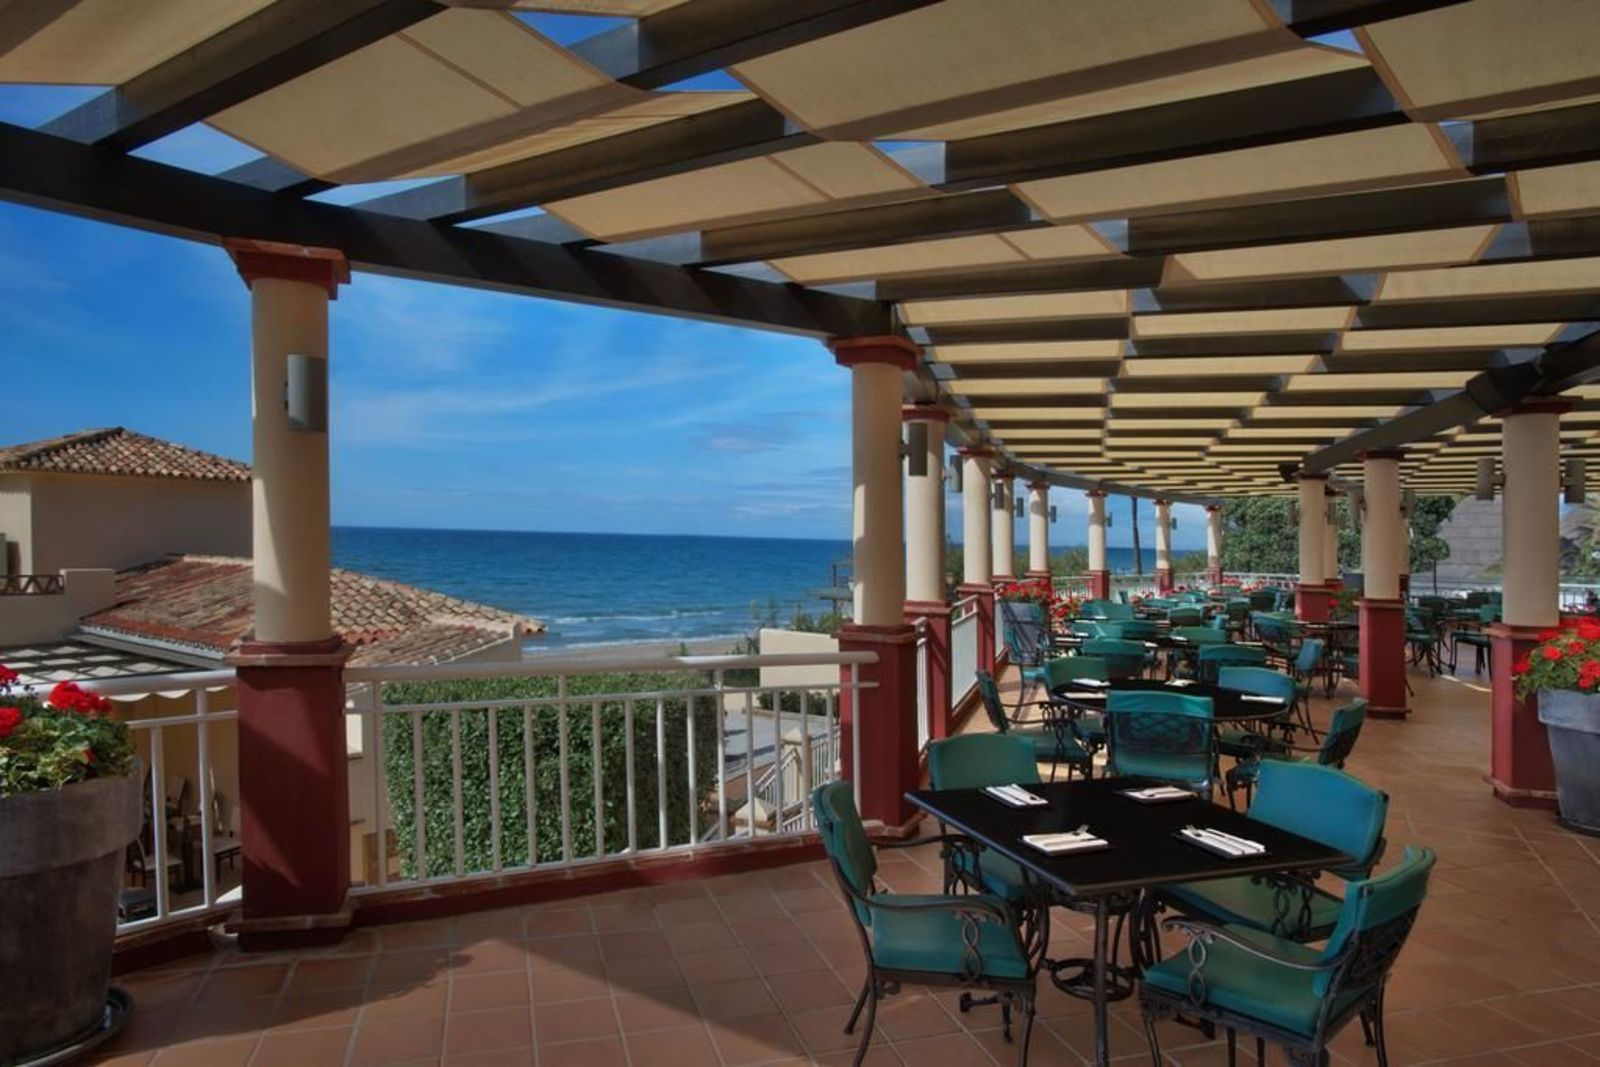 Marriott's Marbella Beach Resort, 3-Bedroom